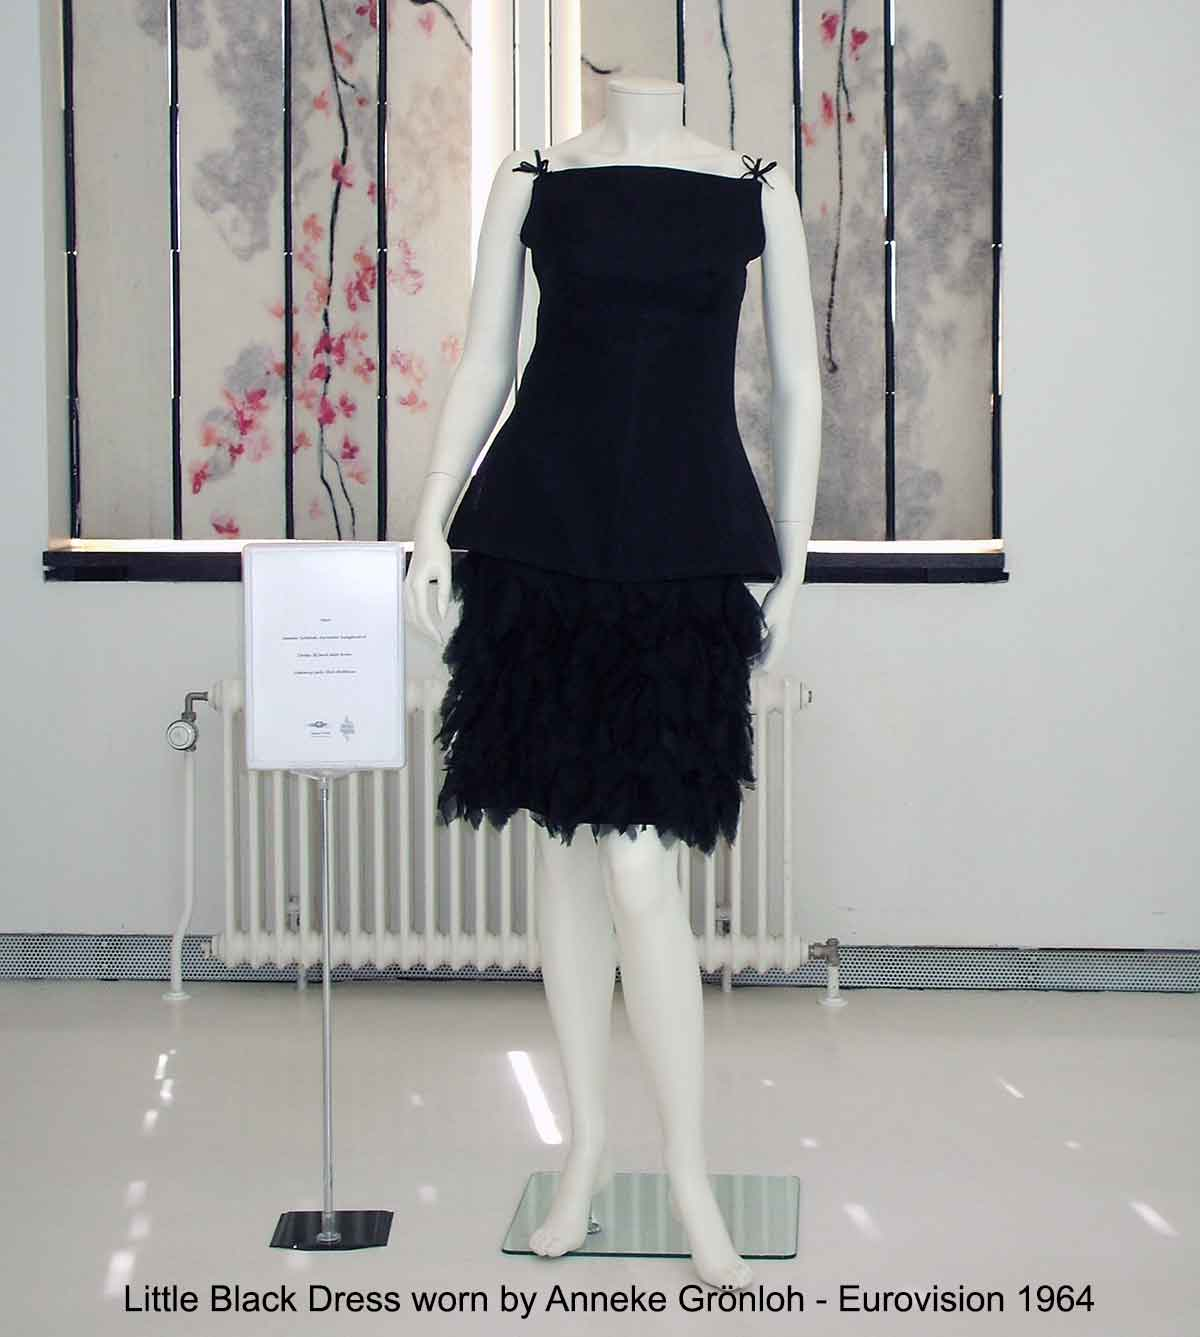 Little Black Dress worn by Anneke Grönloh - Eurovision 1964